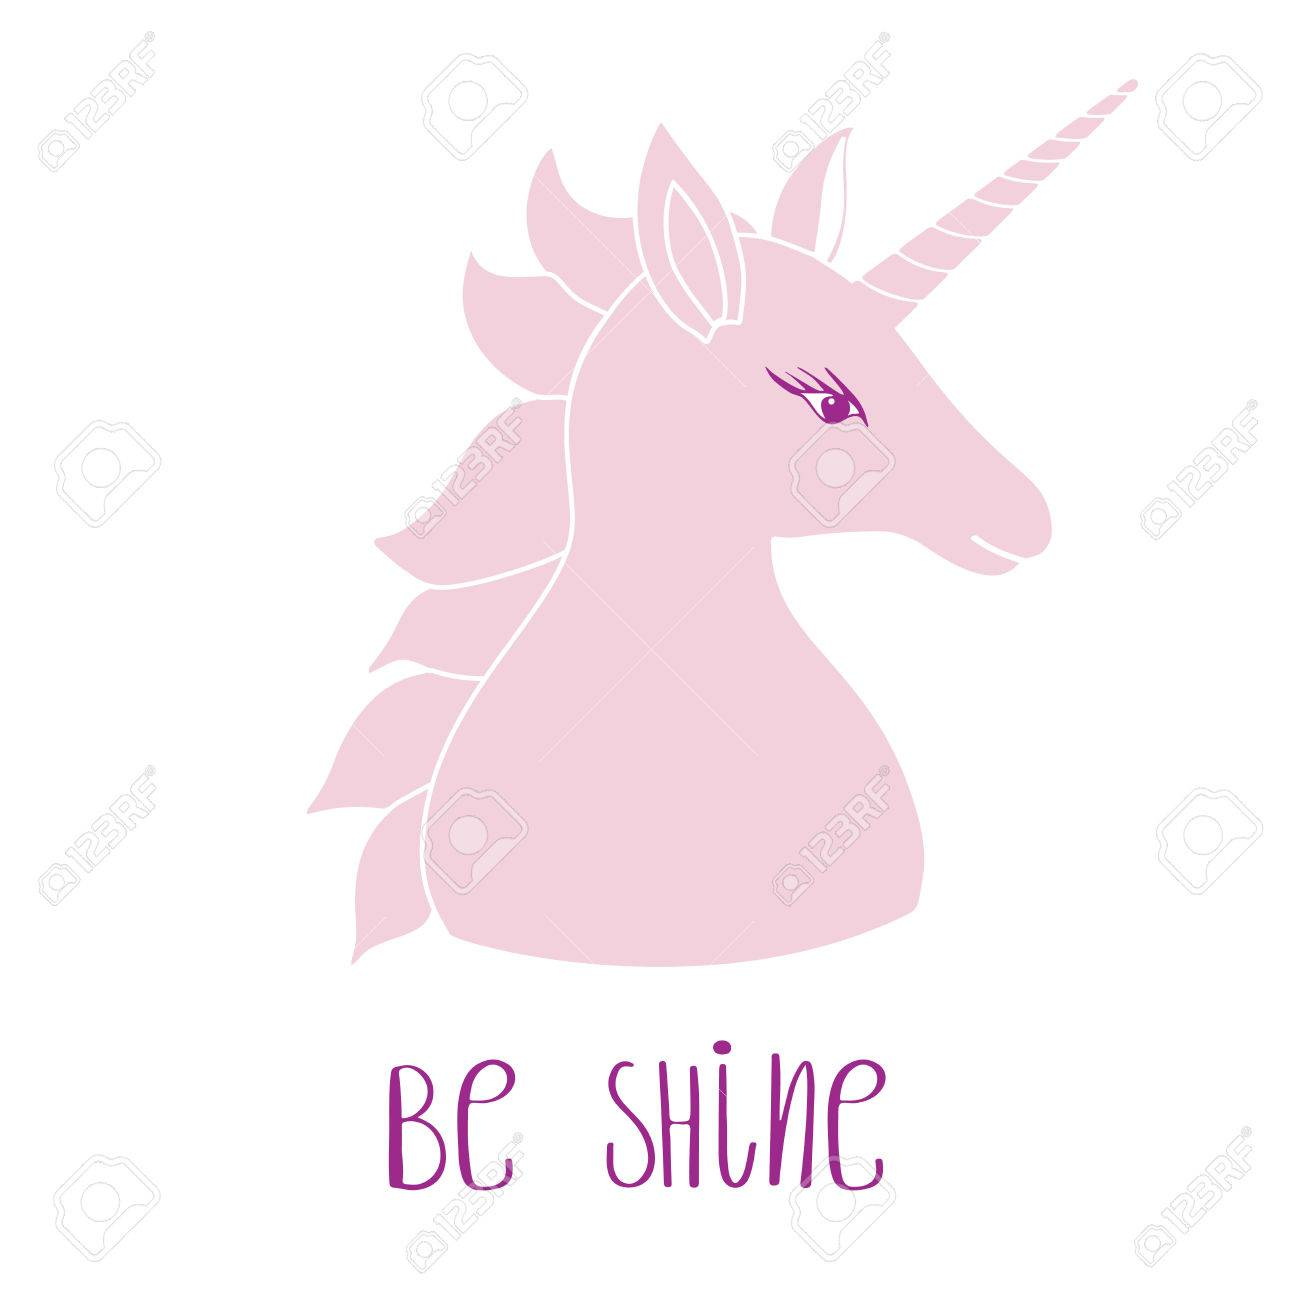 Cute Pink Unicorn With Inscription Be Shine Vector Illustration